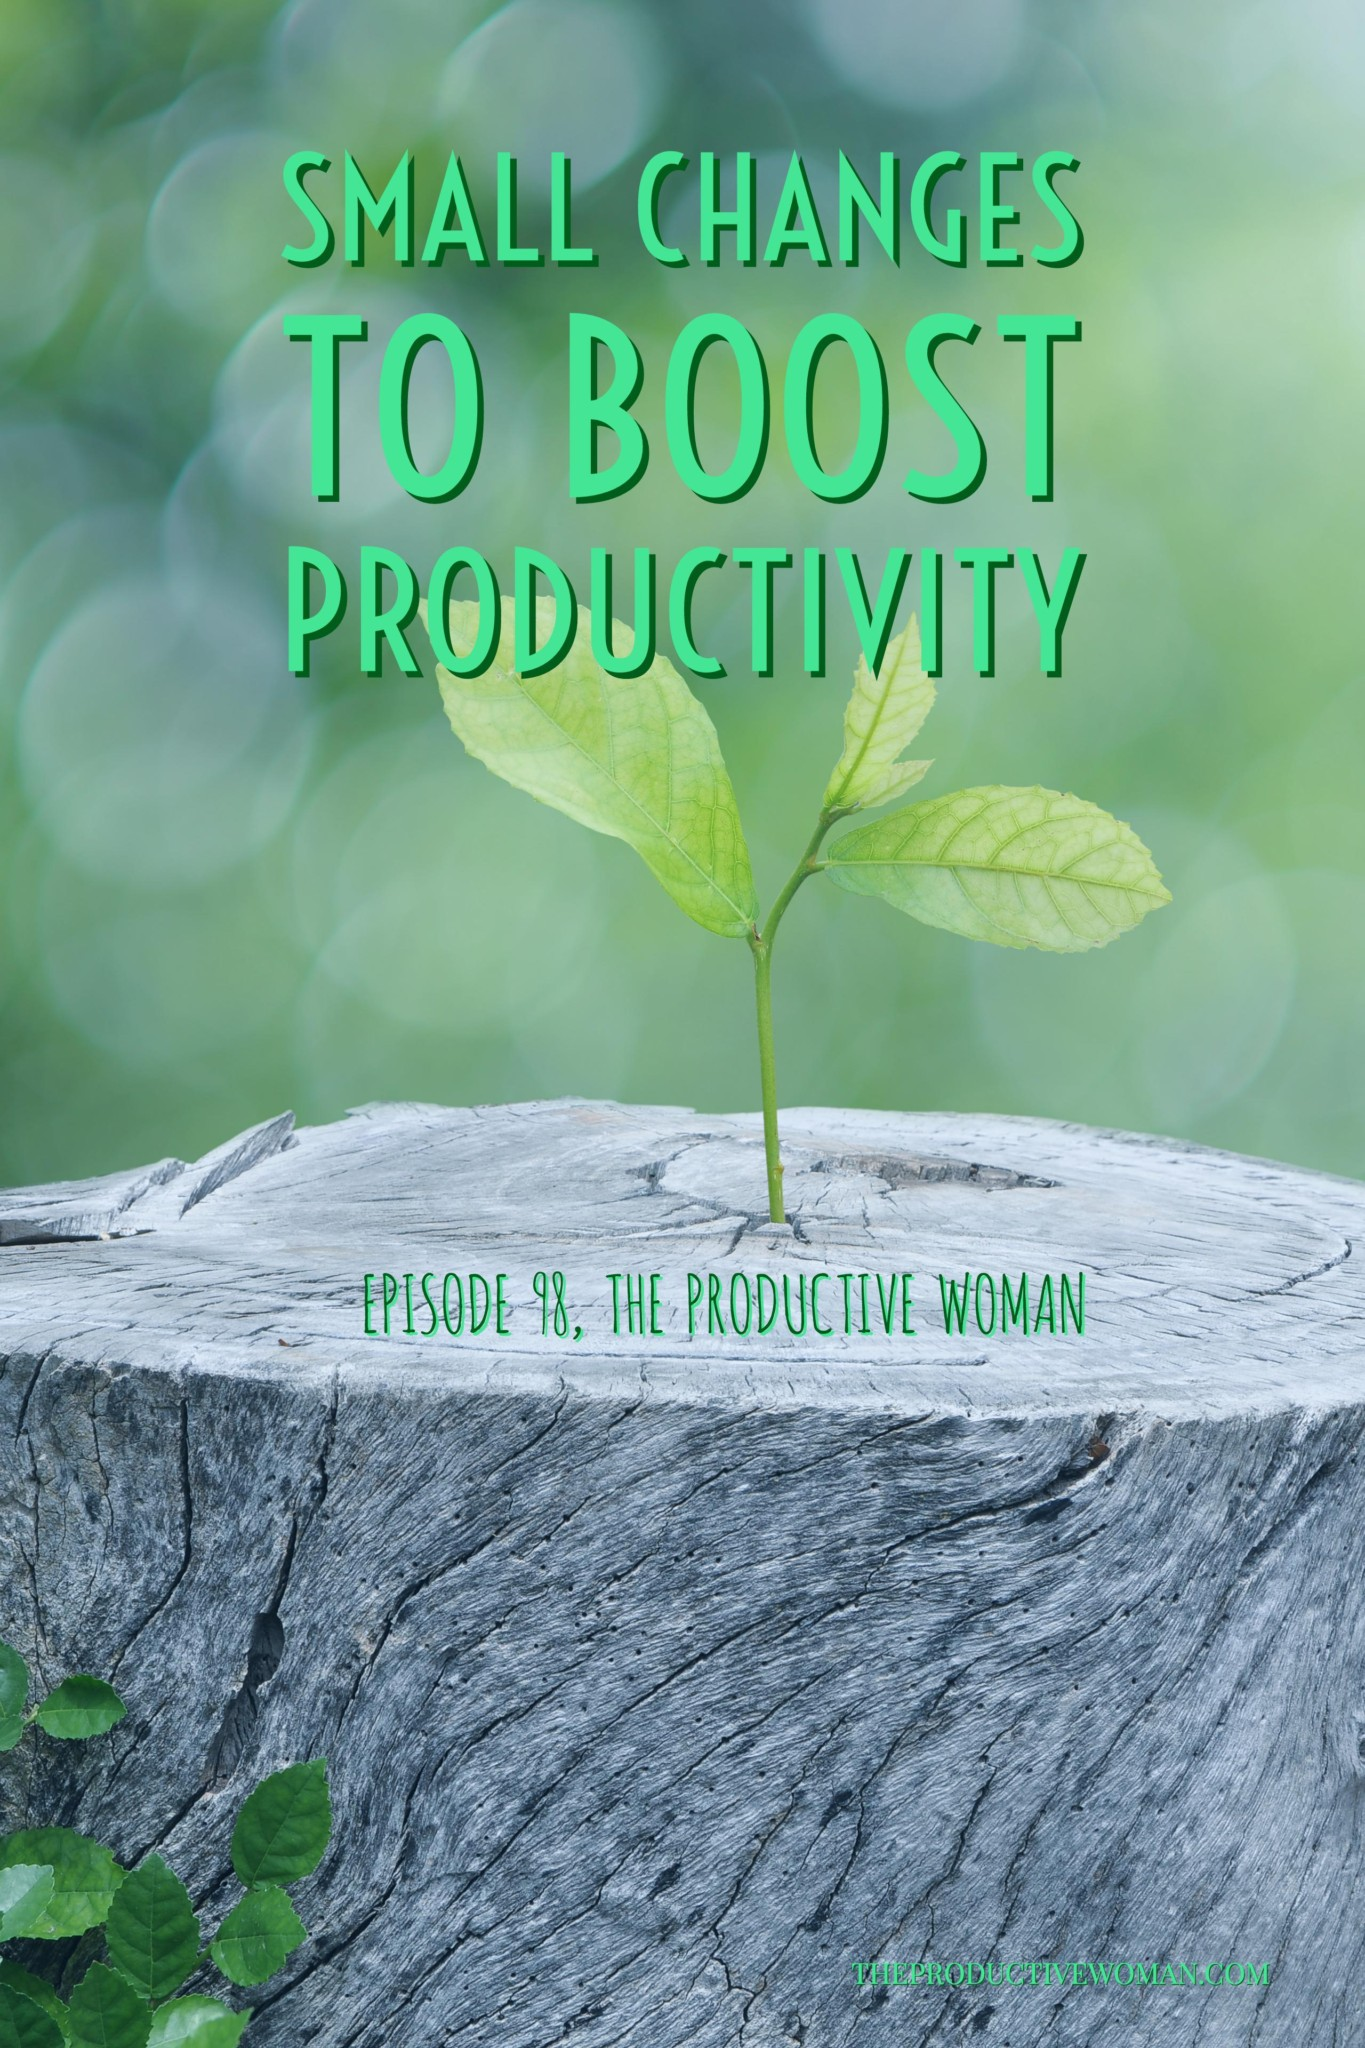 You don't have to completely overhaul your life to make progress toward your goals. Small changes can reap big rewards in making a meaningfully productive life. Episode 98 of The Productive Woman podcast looks at some small changes you can make today to improve your productivity.